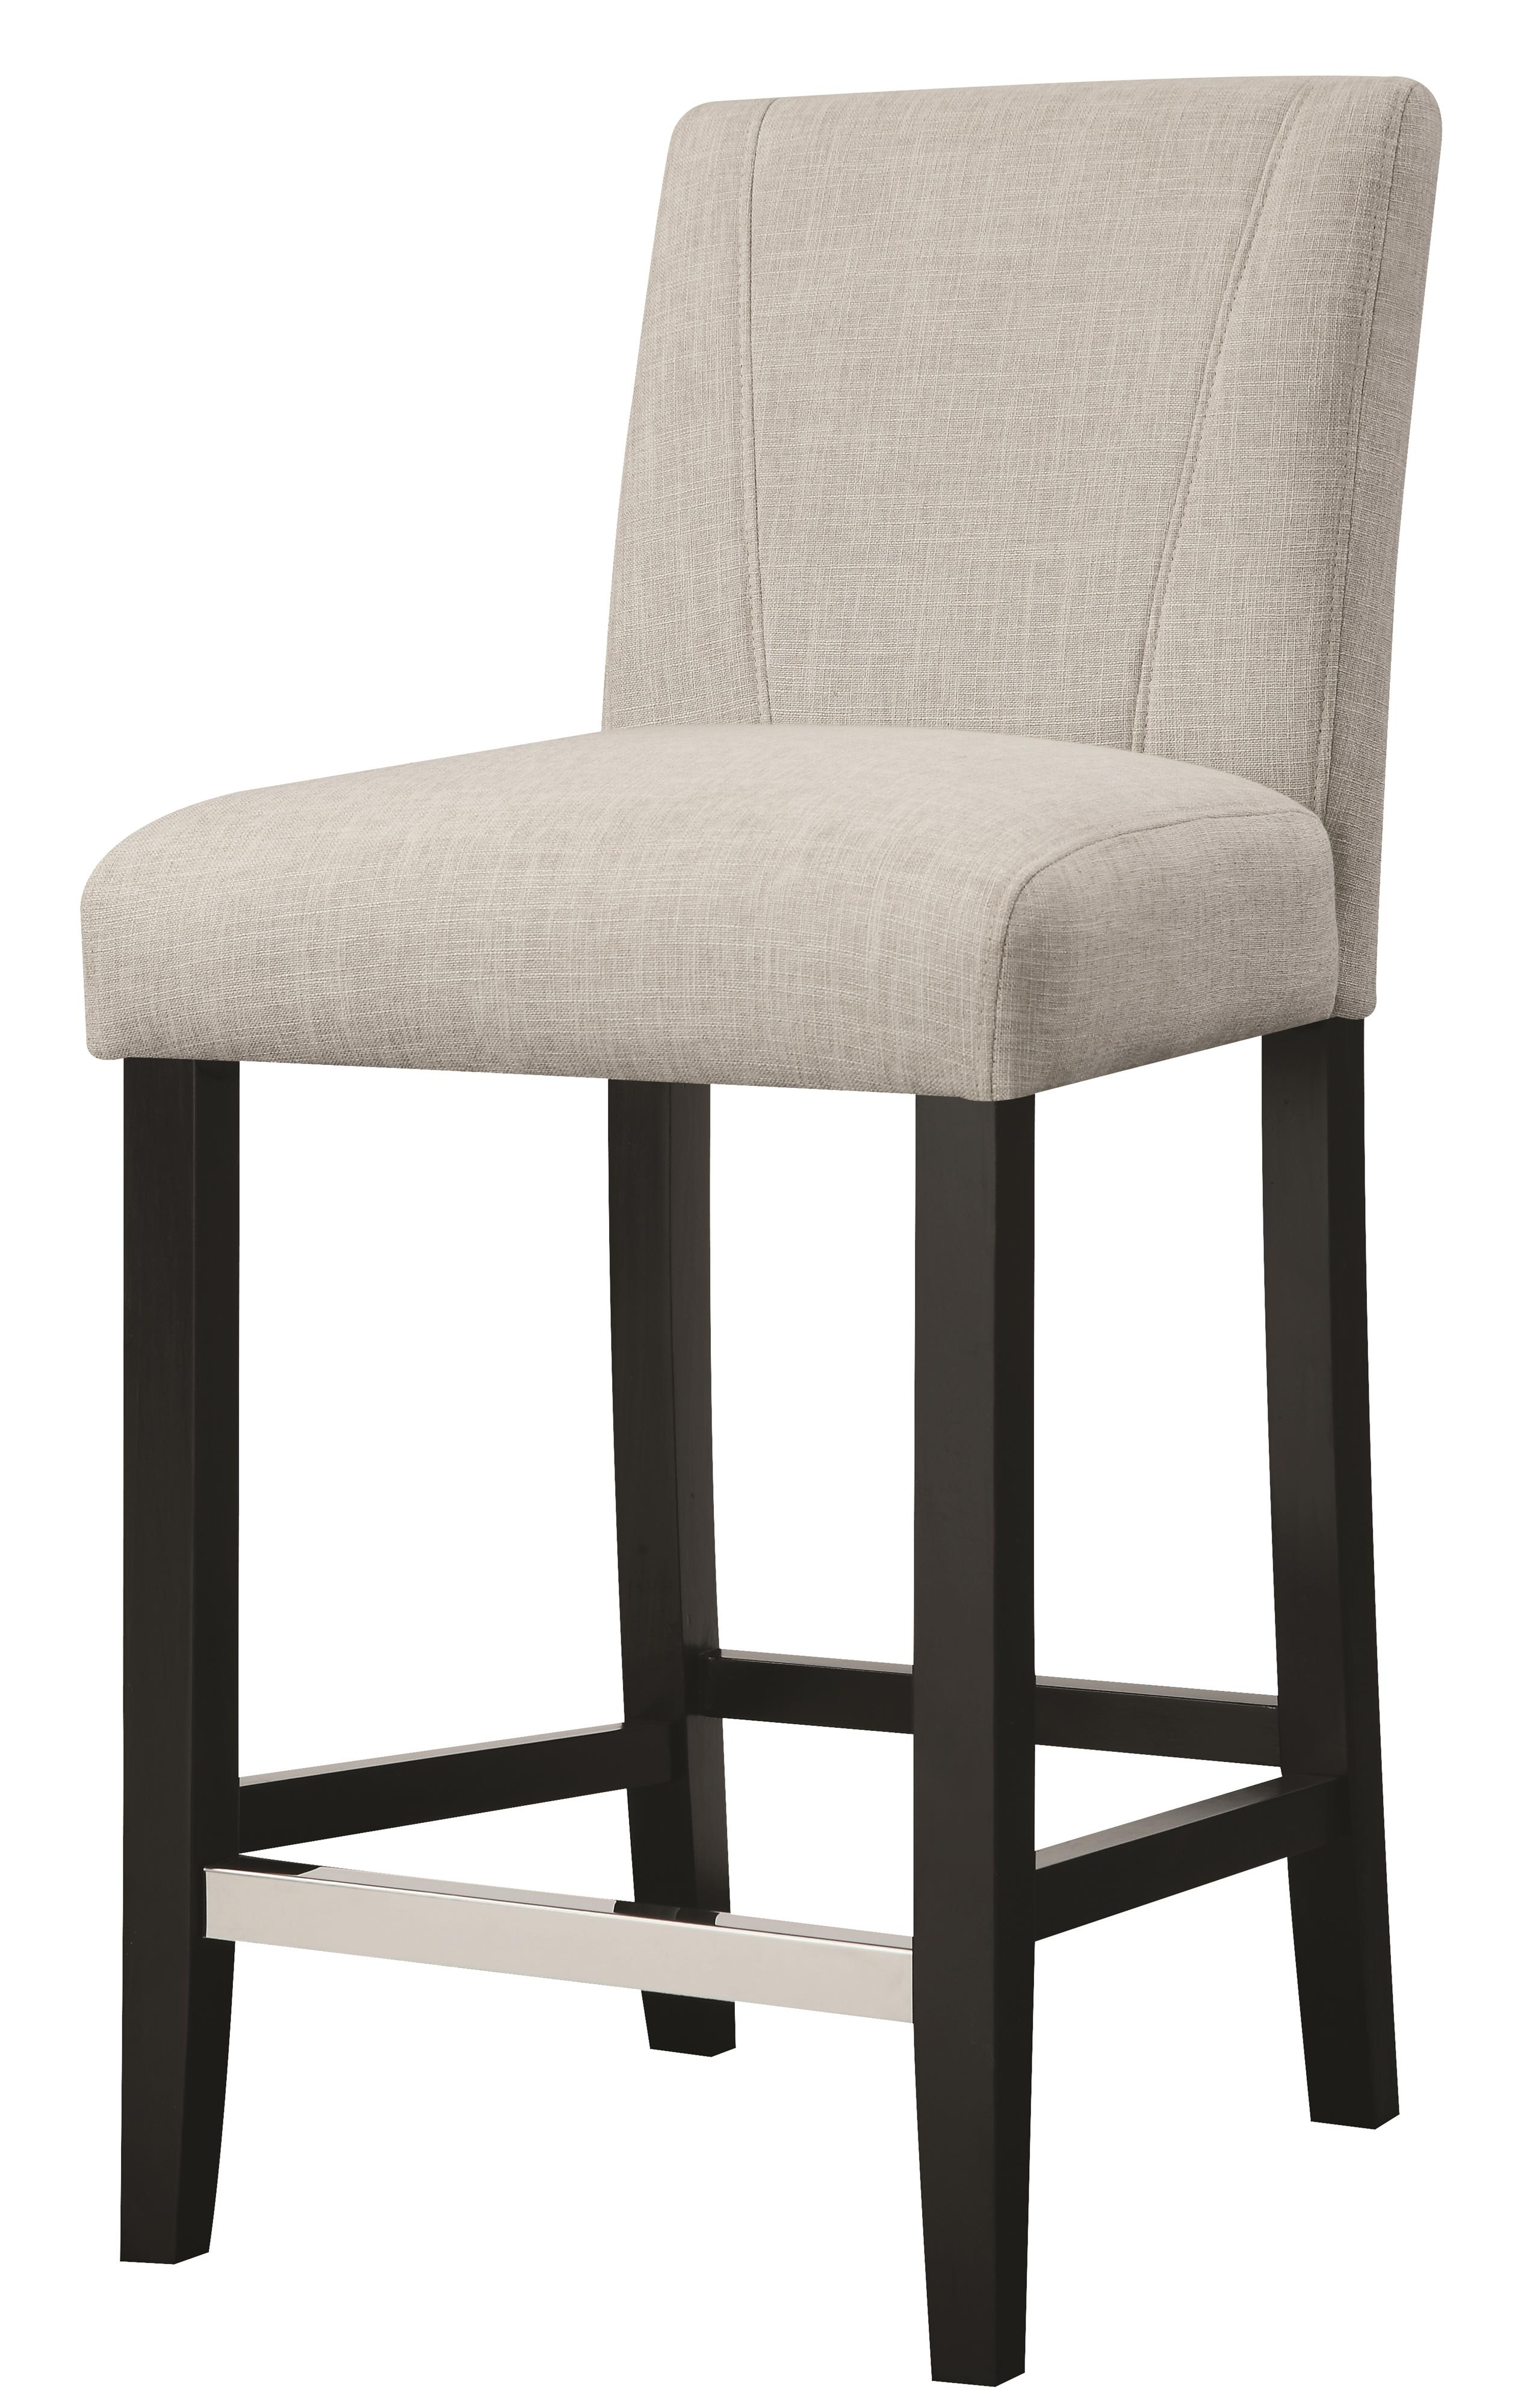 Coaster Dining Chairs and Bar Stools Dining Stool - Item Number: 130063